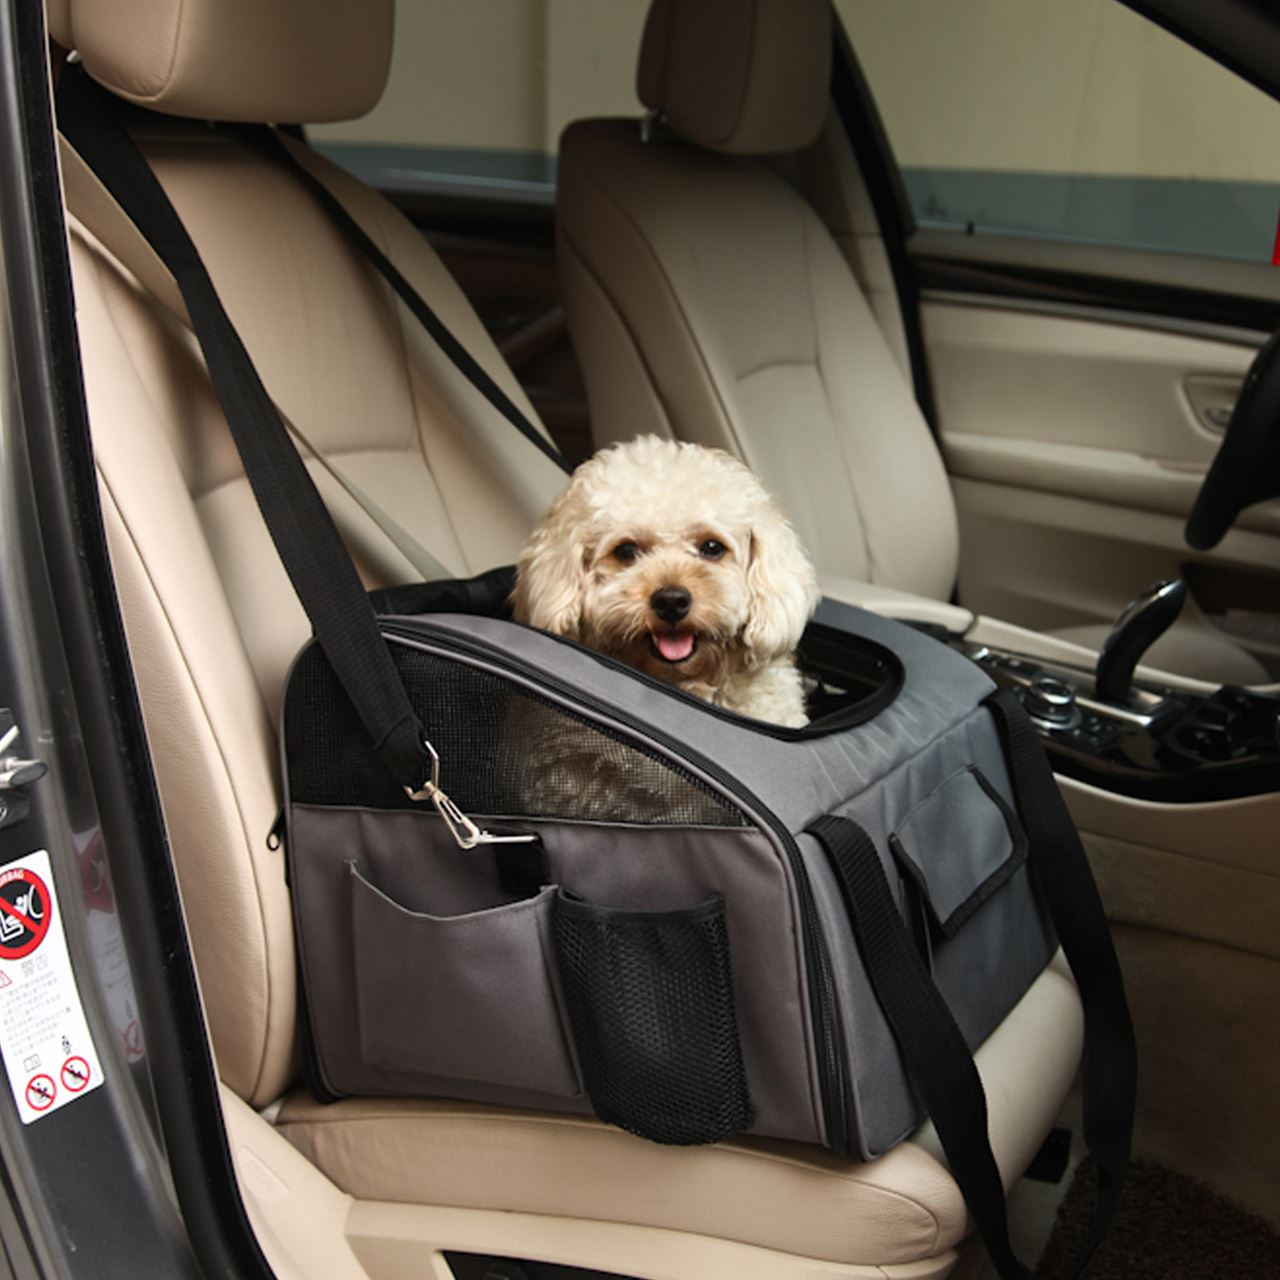 Using crate for your dog when it is in your car